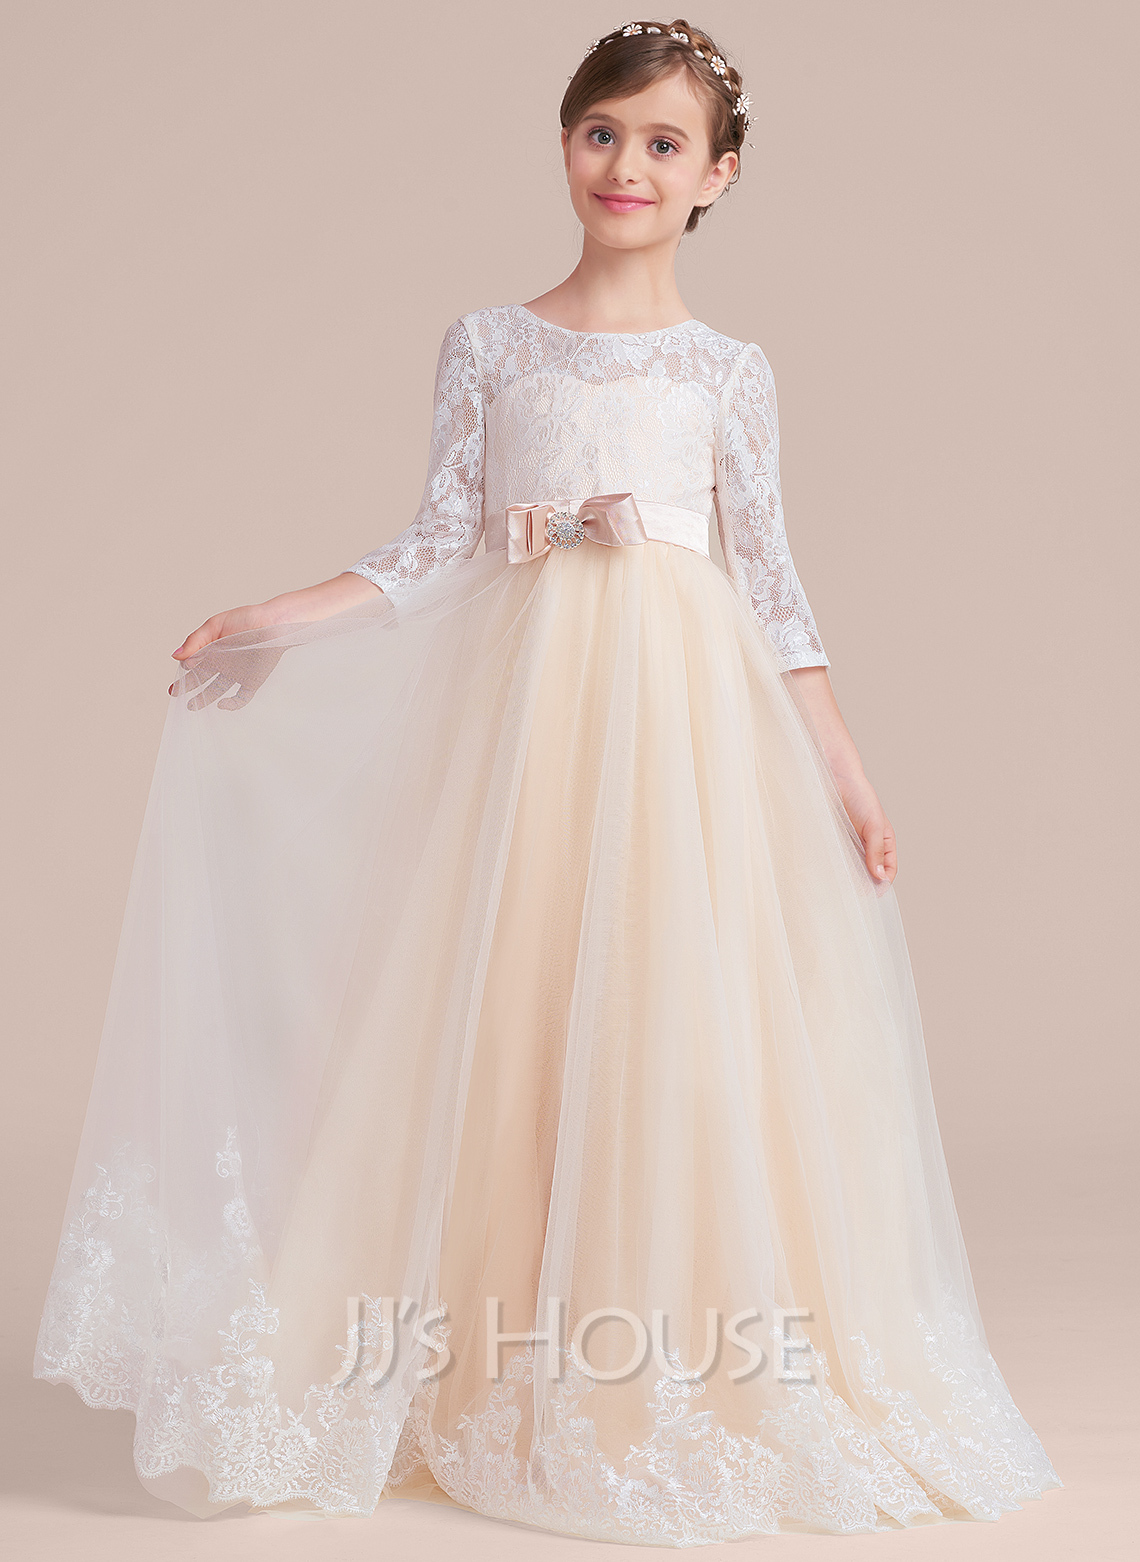 Ball-Gown/Princess Scoop Neck Floor-Length Tulle Lace Junior Bridesmaid Dress With Sash Beading Bow(s)